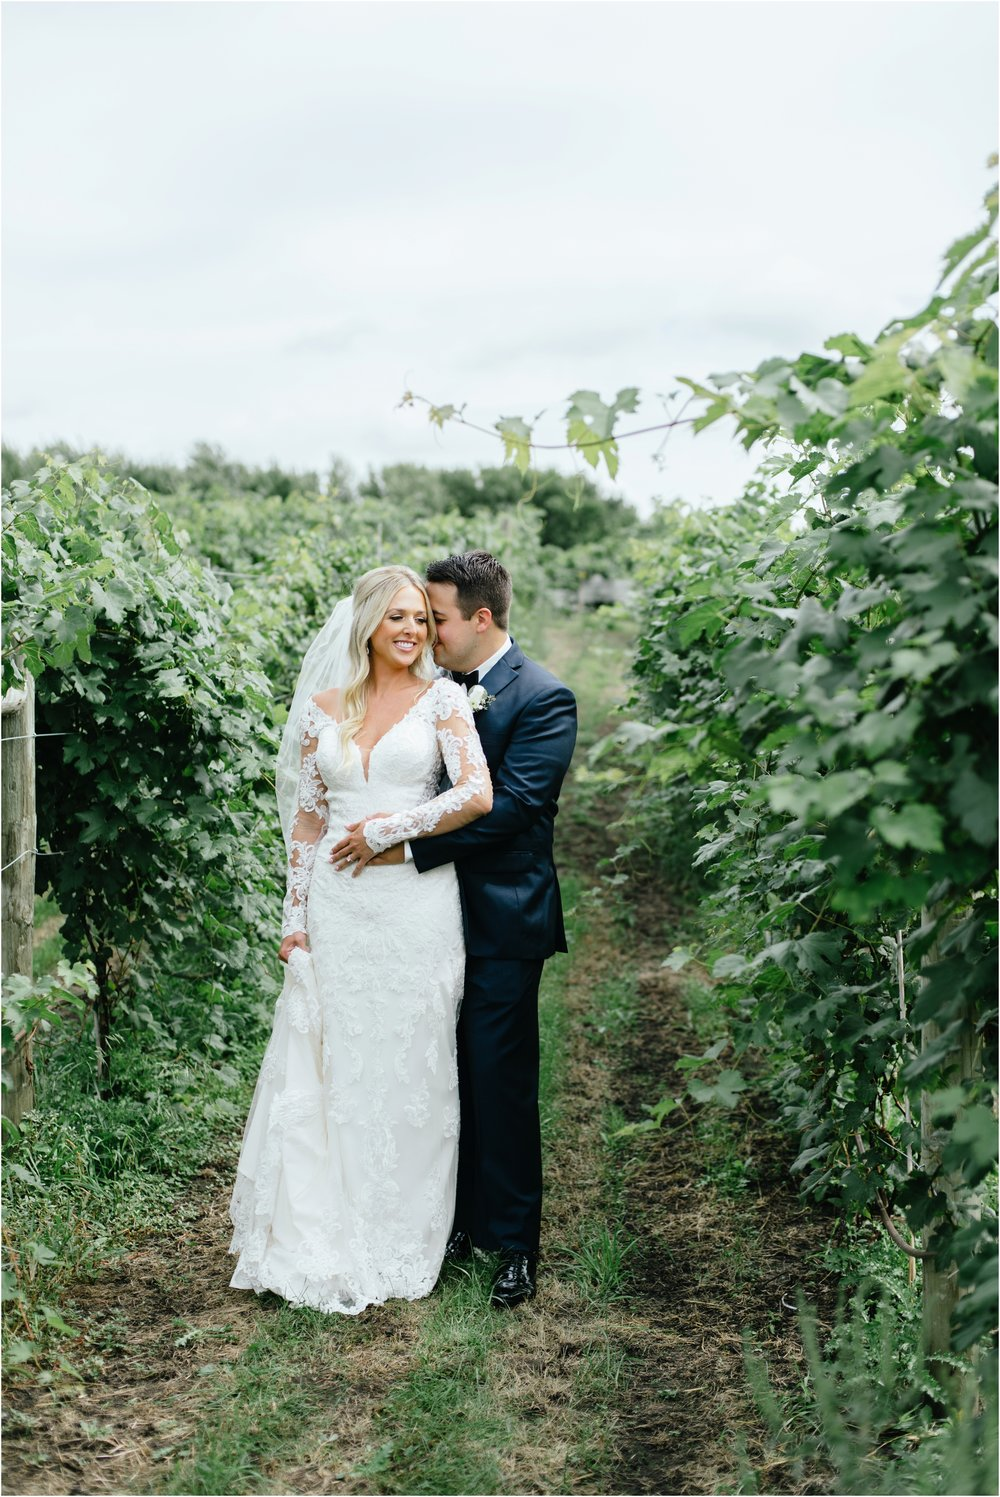 dallasweddingphotographer_fortworthweddingphotographer_texasweddingphotographer_mattandjulieweddings_vinyardwedding_Chelsey+Tom_0012.jpg